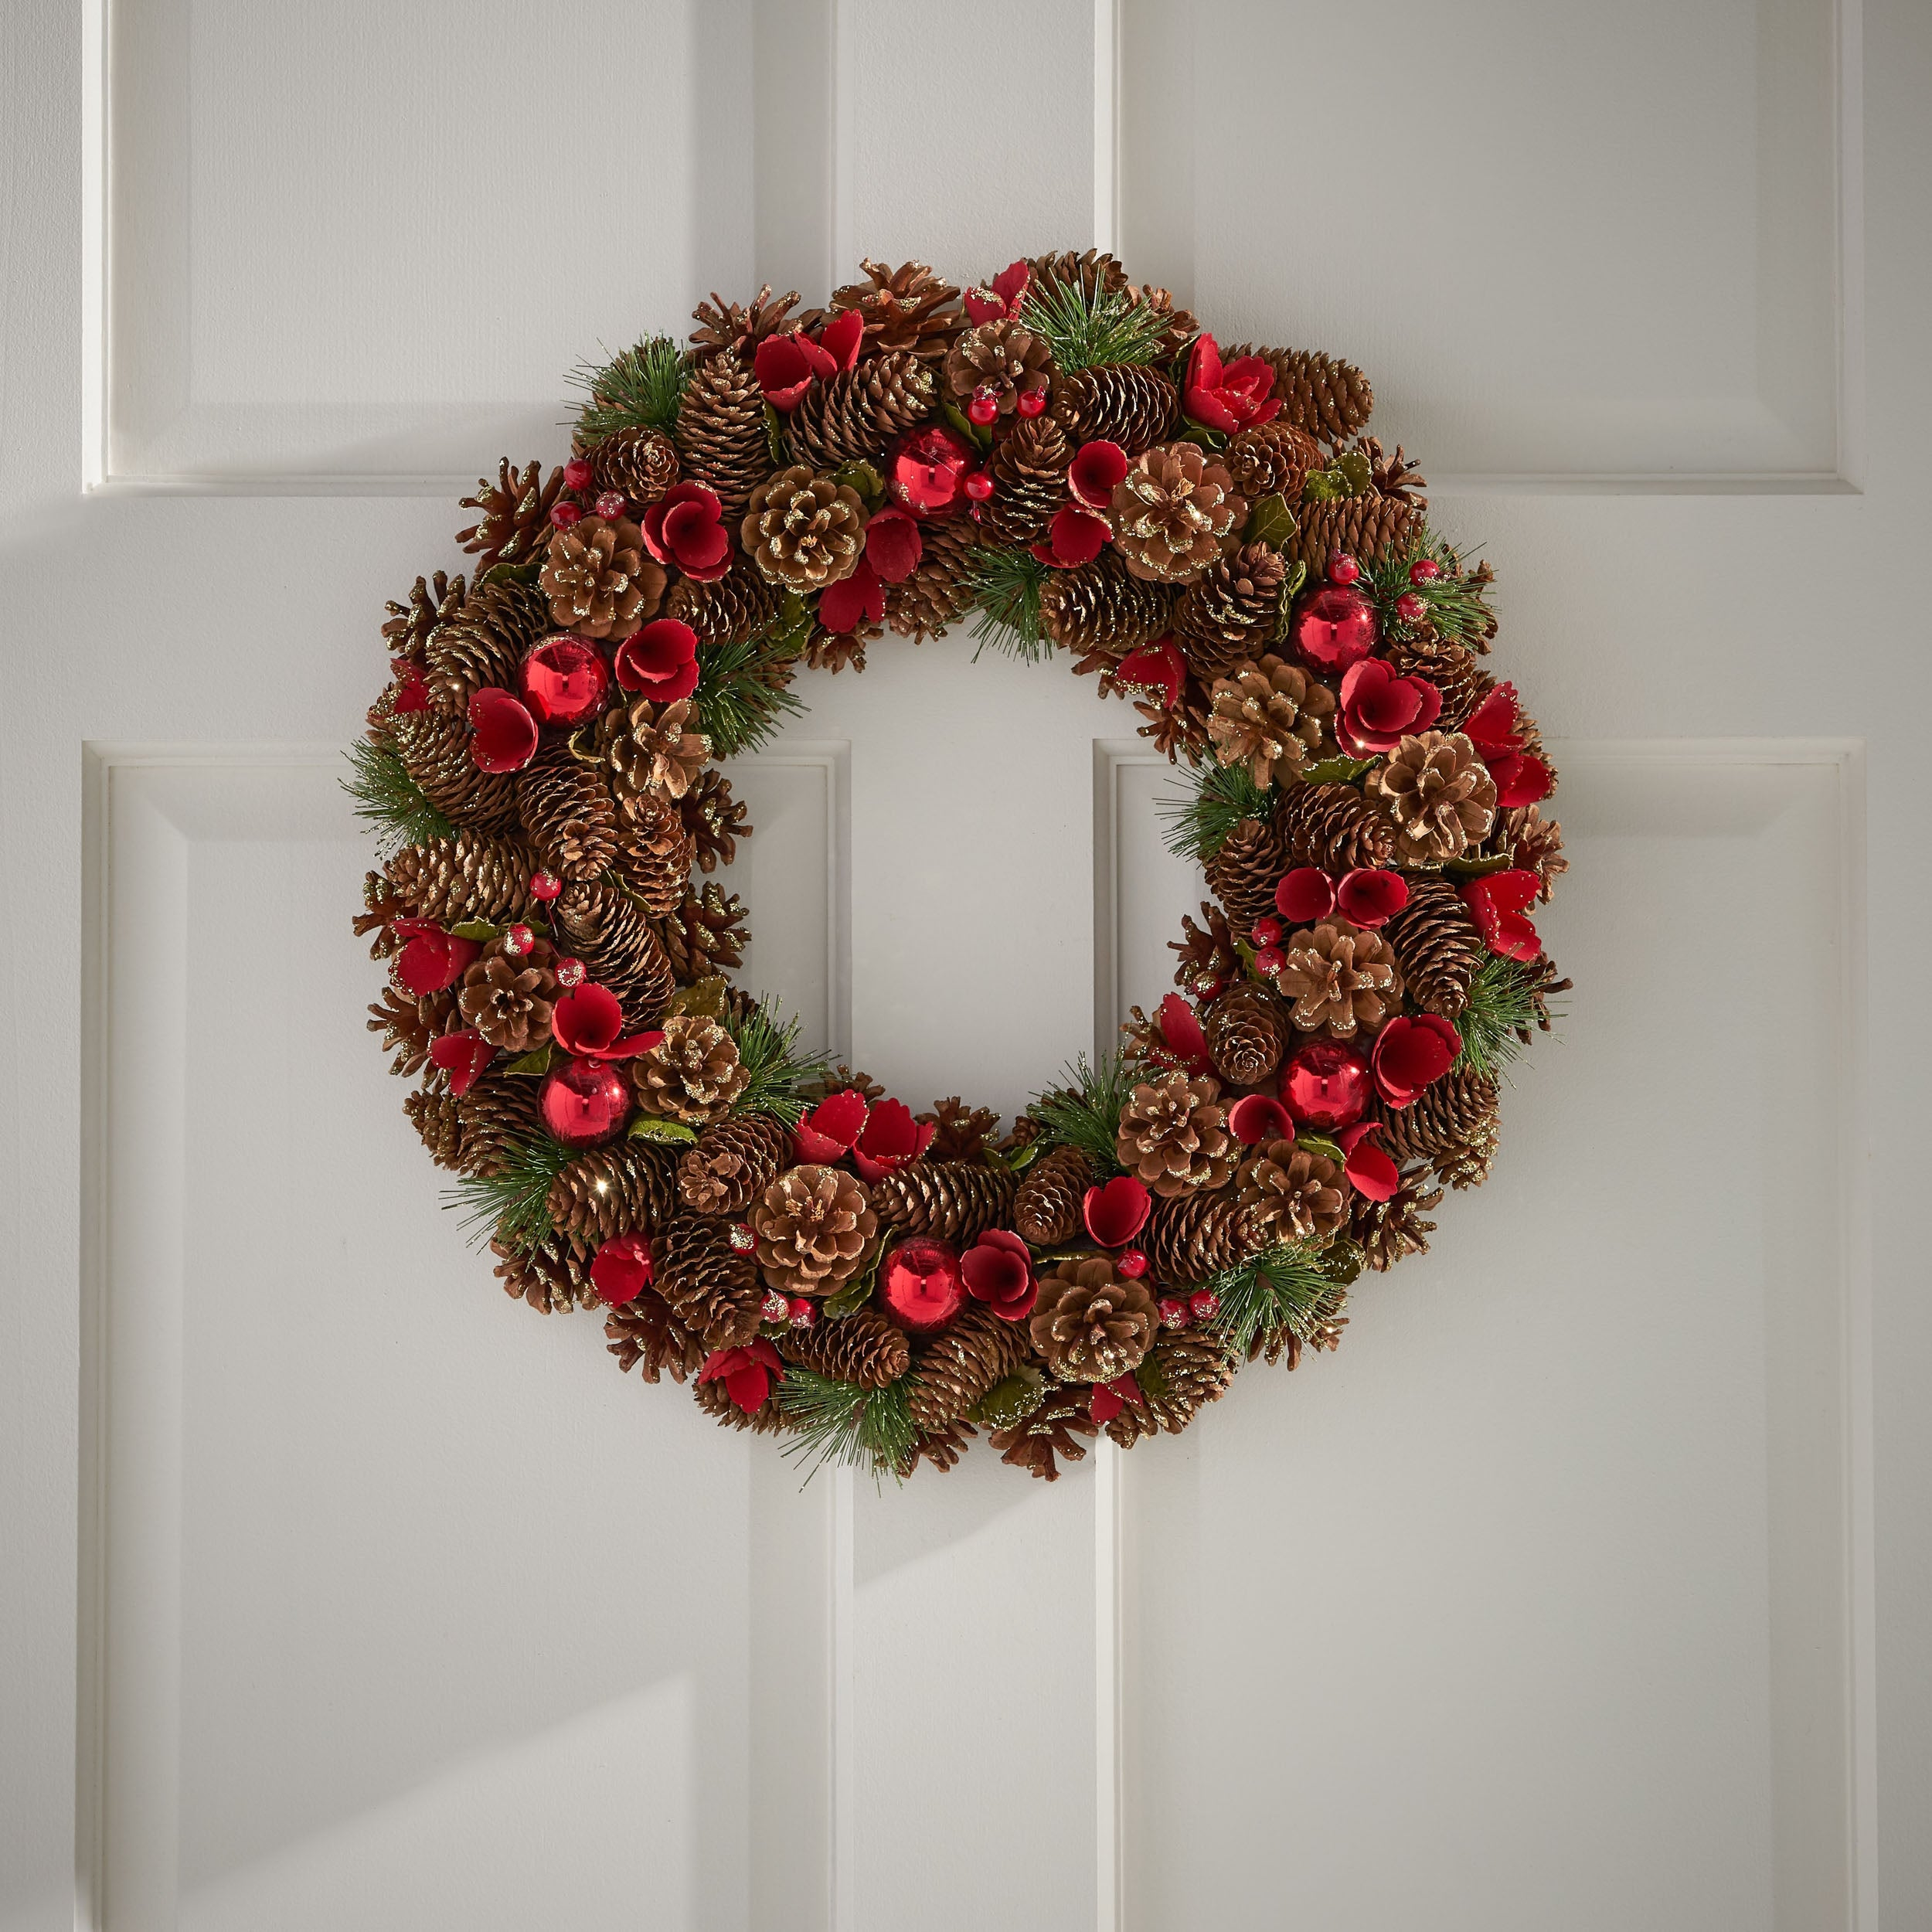 Kingsbridge 18 5 Pine Cone And Glitter Artificial Christmas Wreath Natural And Red By Christopher Knight Home Overstock 32046989